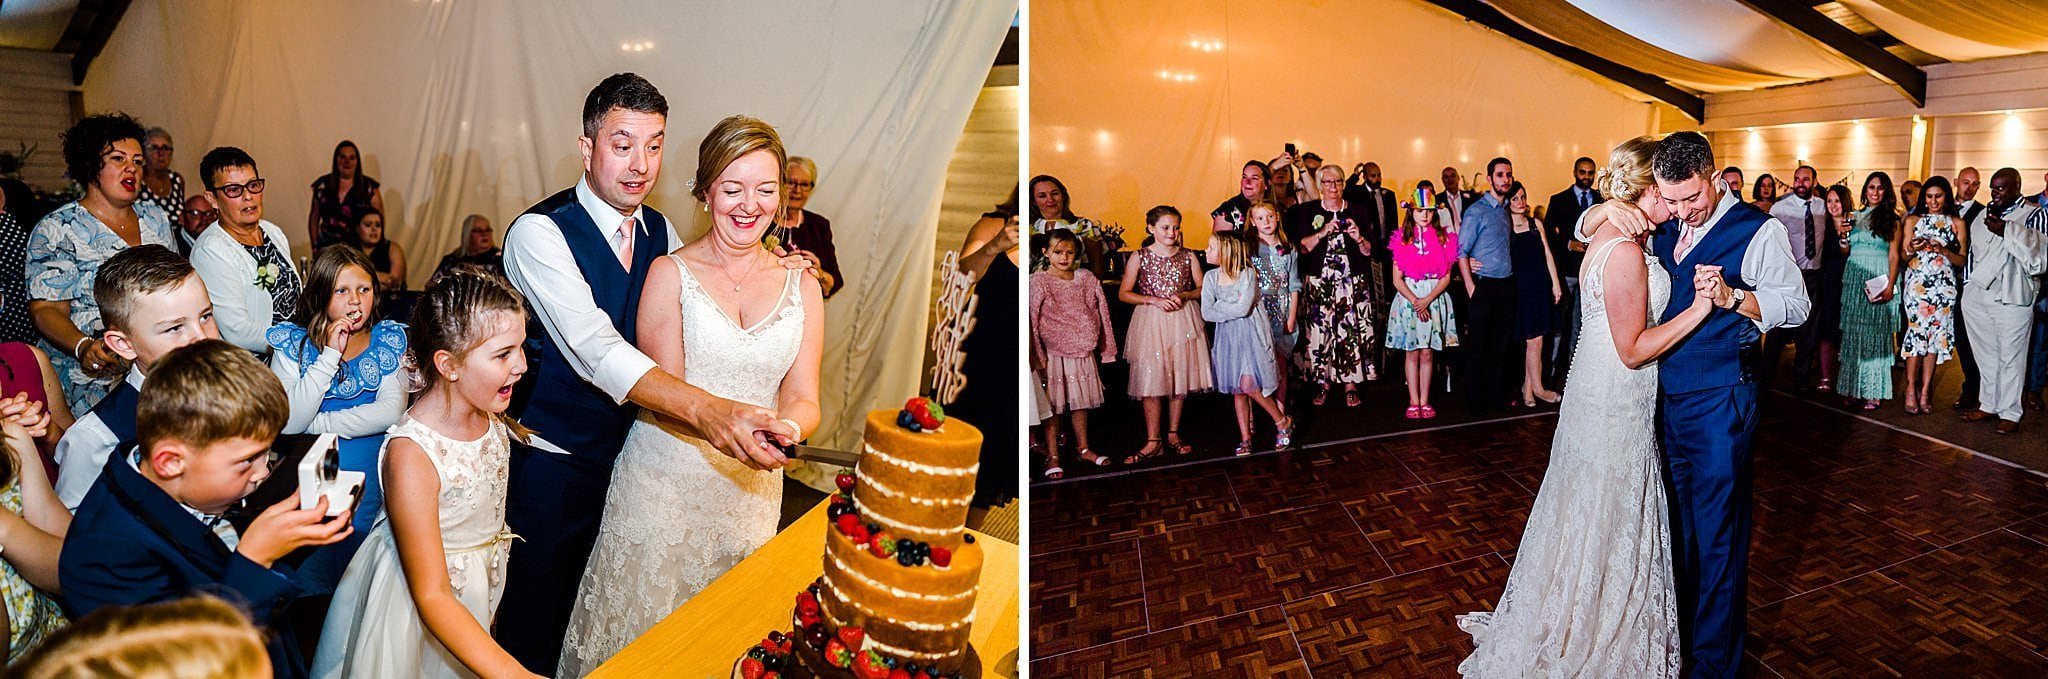 Bride and groom cut their cake and do their first dance at Newton House Barns